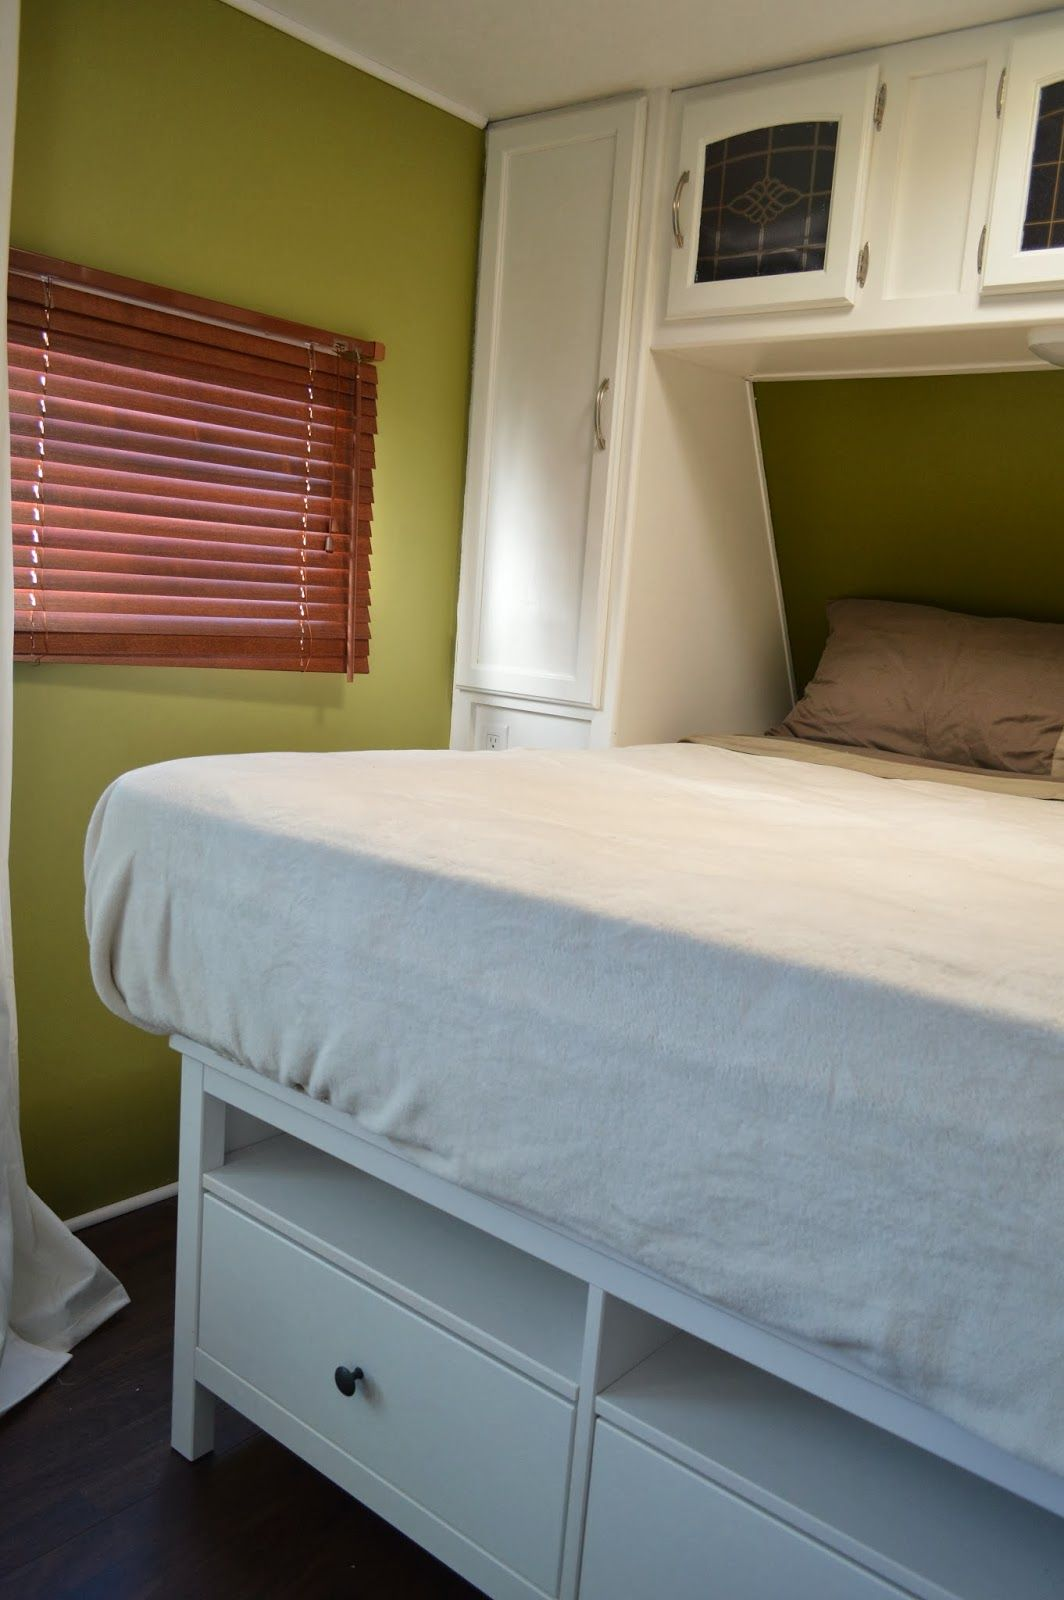 Use small console table for the foot of the bed. Adds